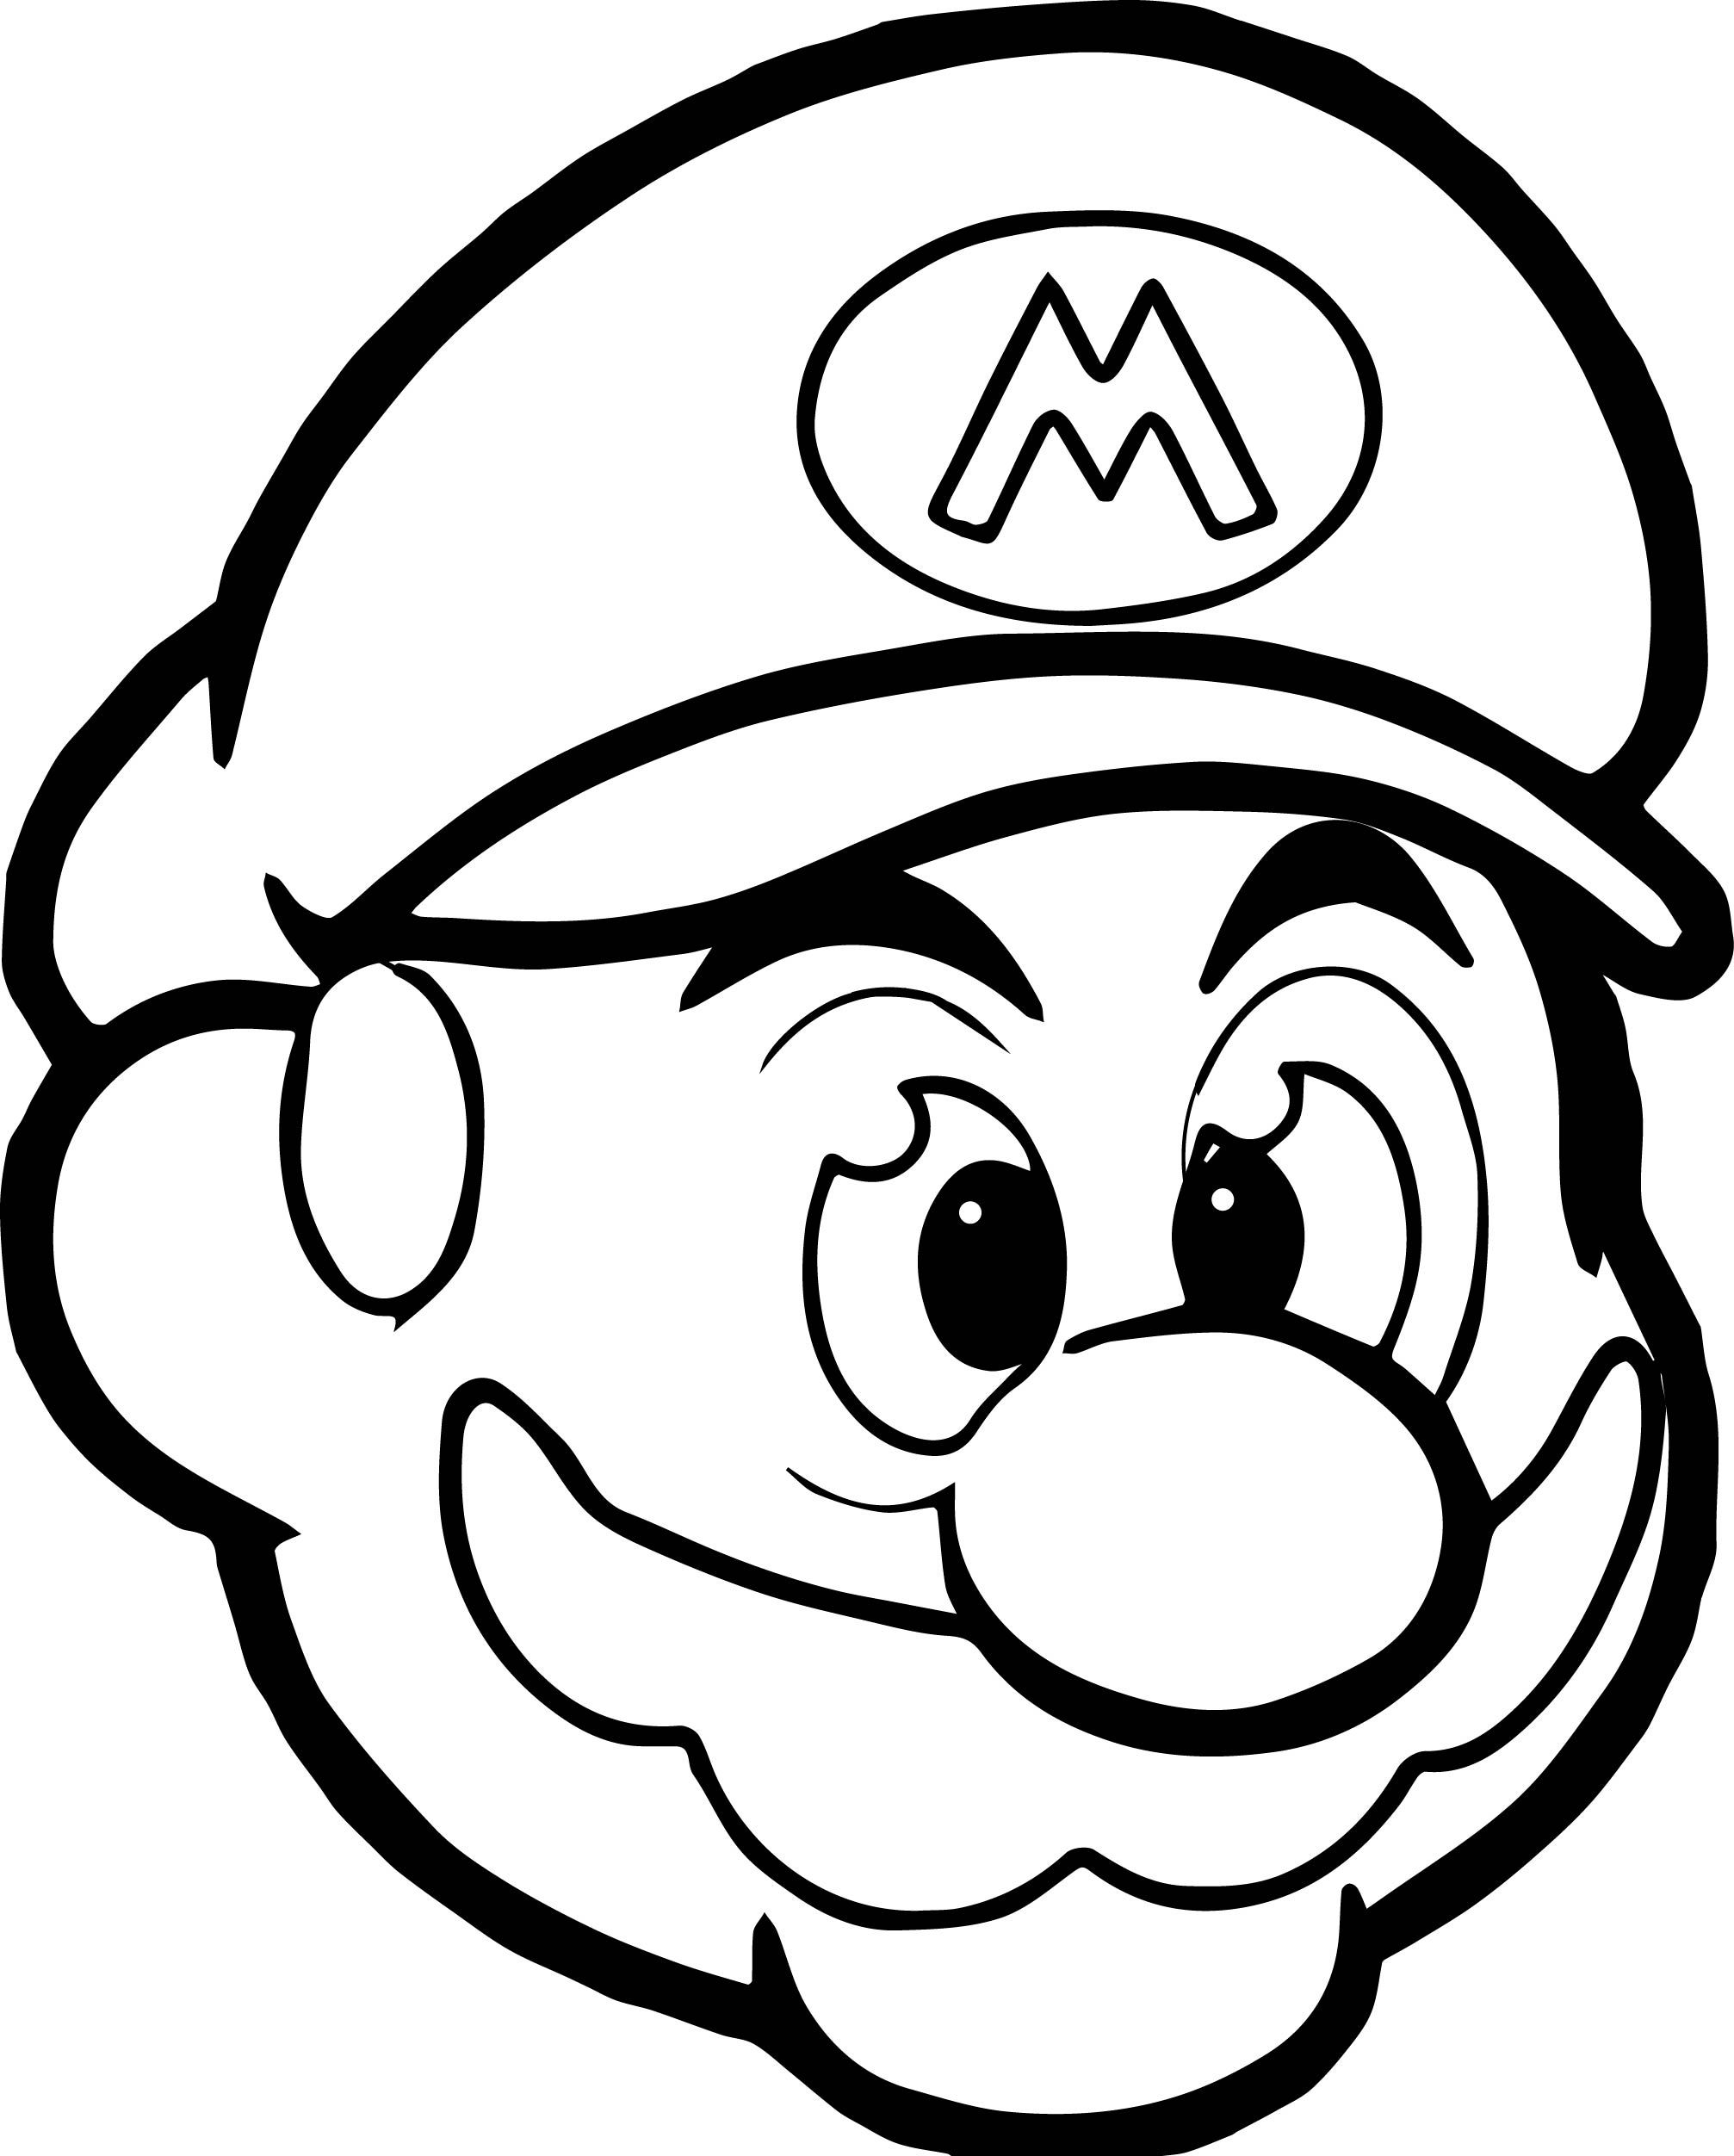 Mario Coloring Pages Mario Coloring Pages Pikachu Coloring Page